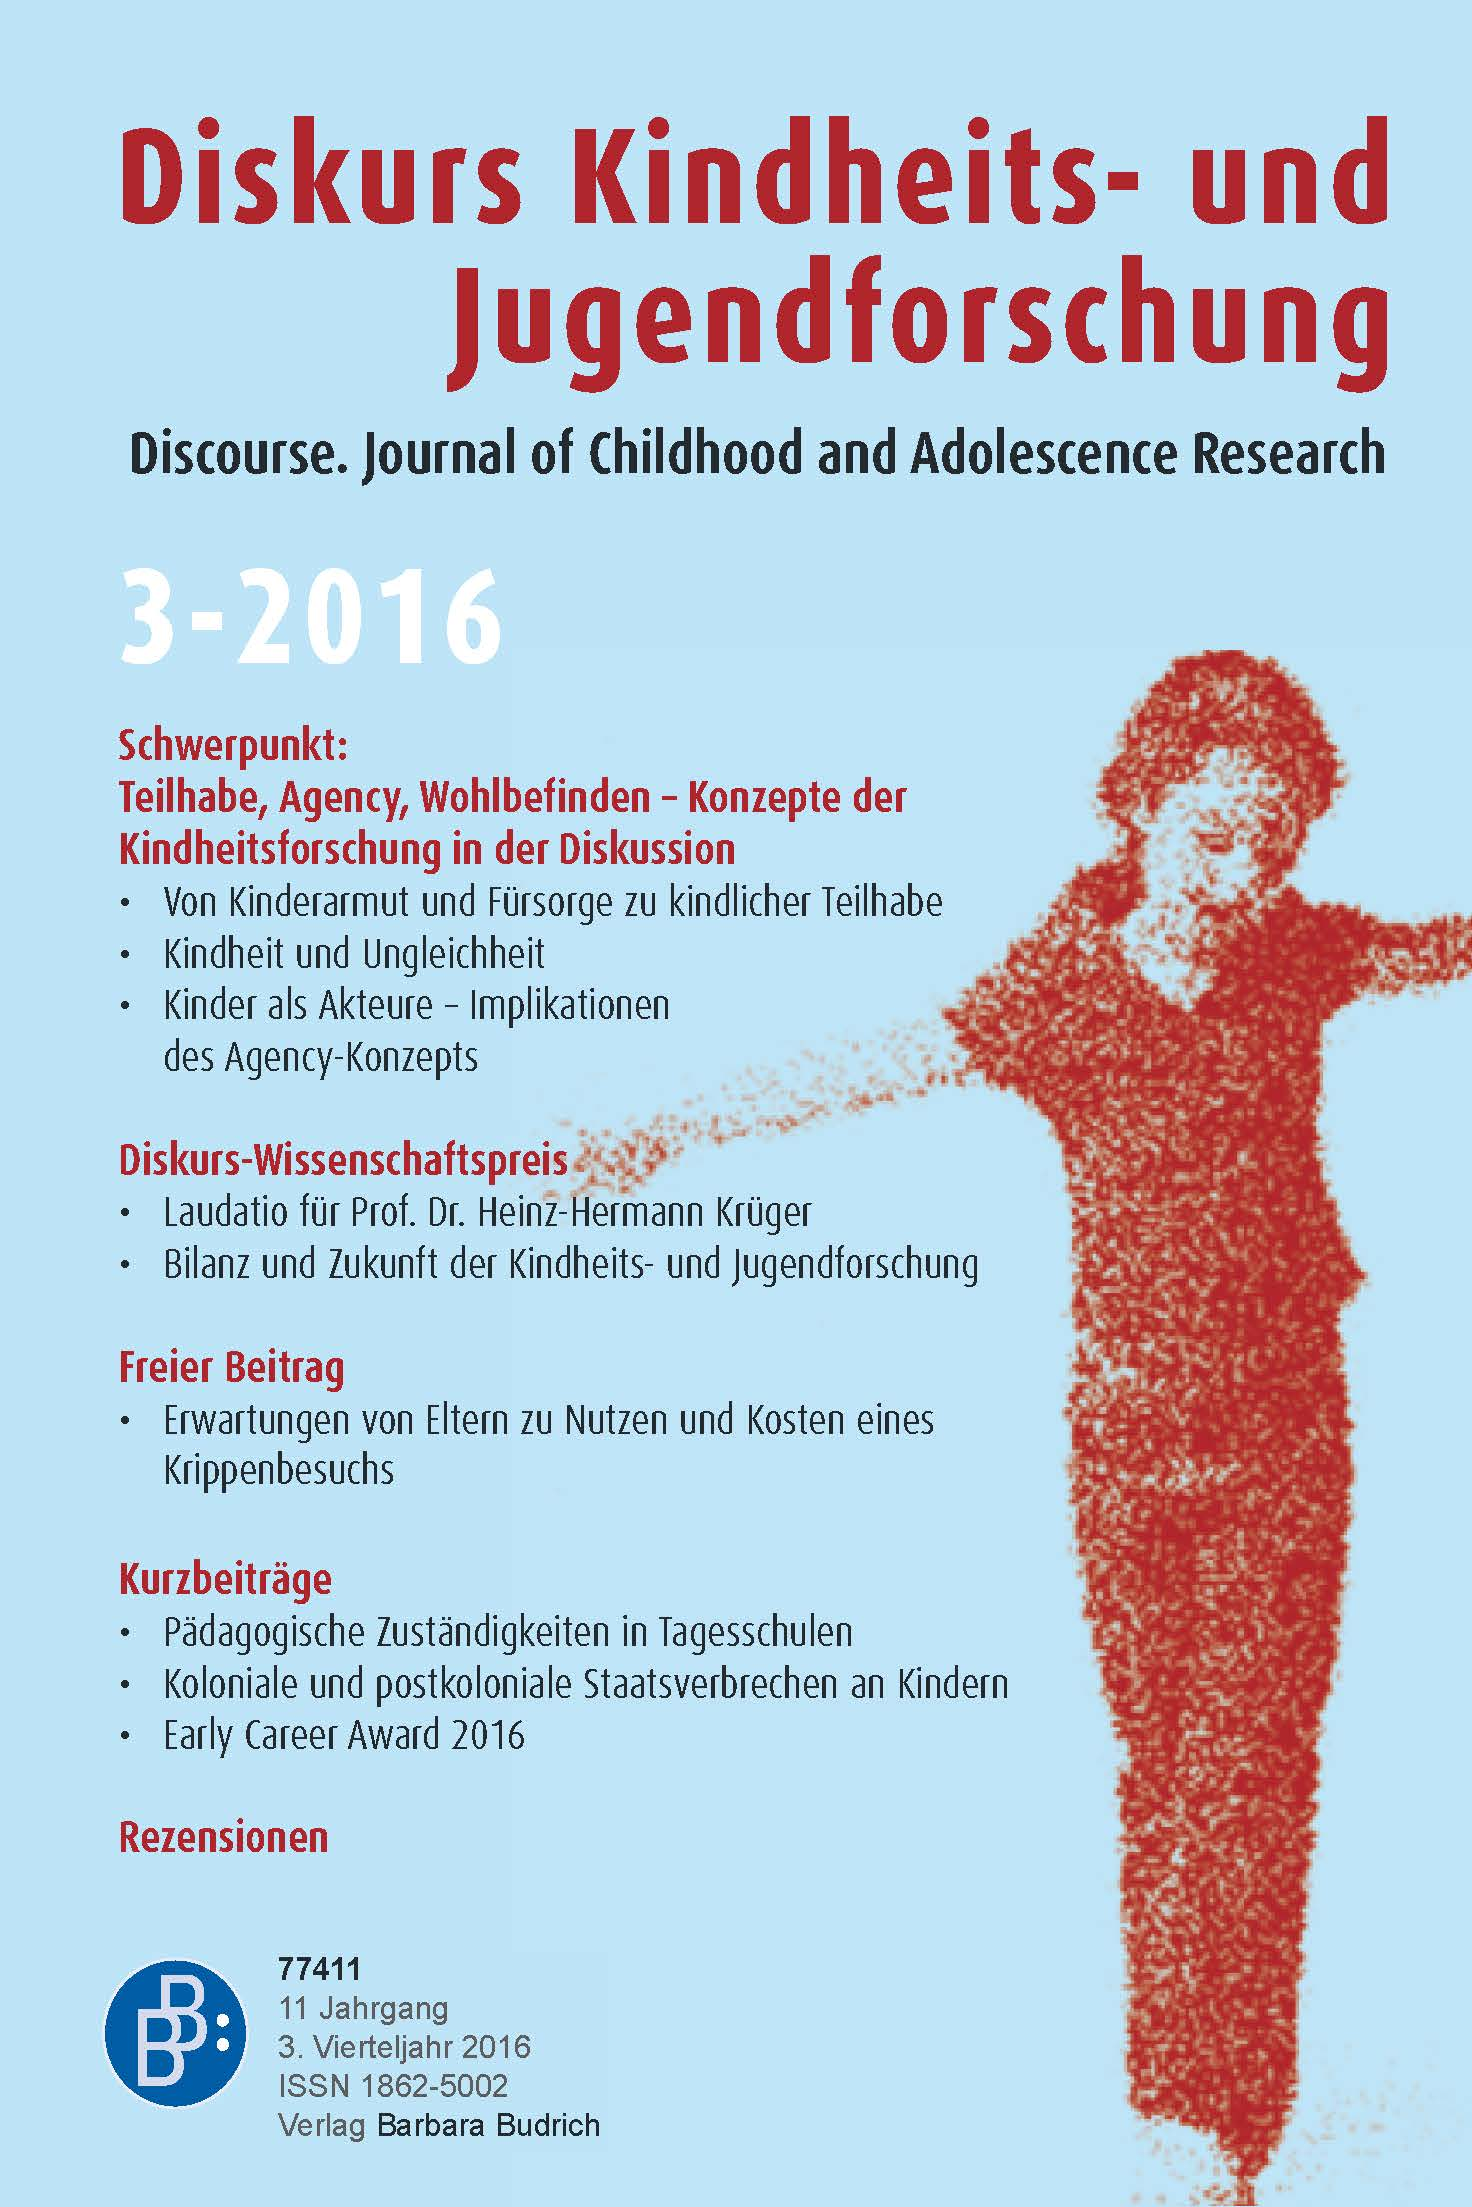 Diskurs Kindheits- und Jugendforschung / Discourse. Journal of Childhood and Adolescence Research 3-2016: Teilhabe, Agency, Wohlbefinden – Konzepte der Kindheitsforschung in der Diskussion